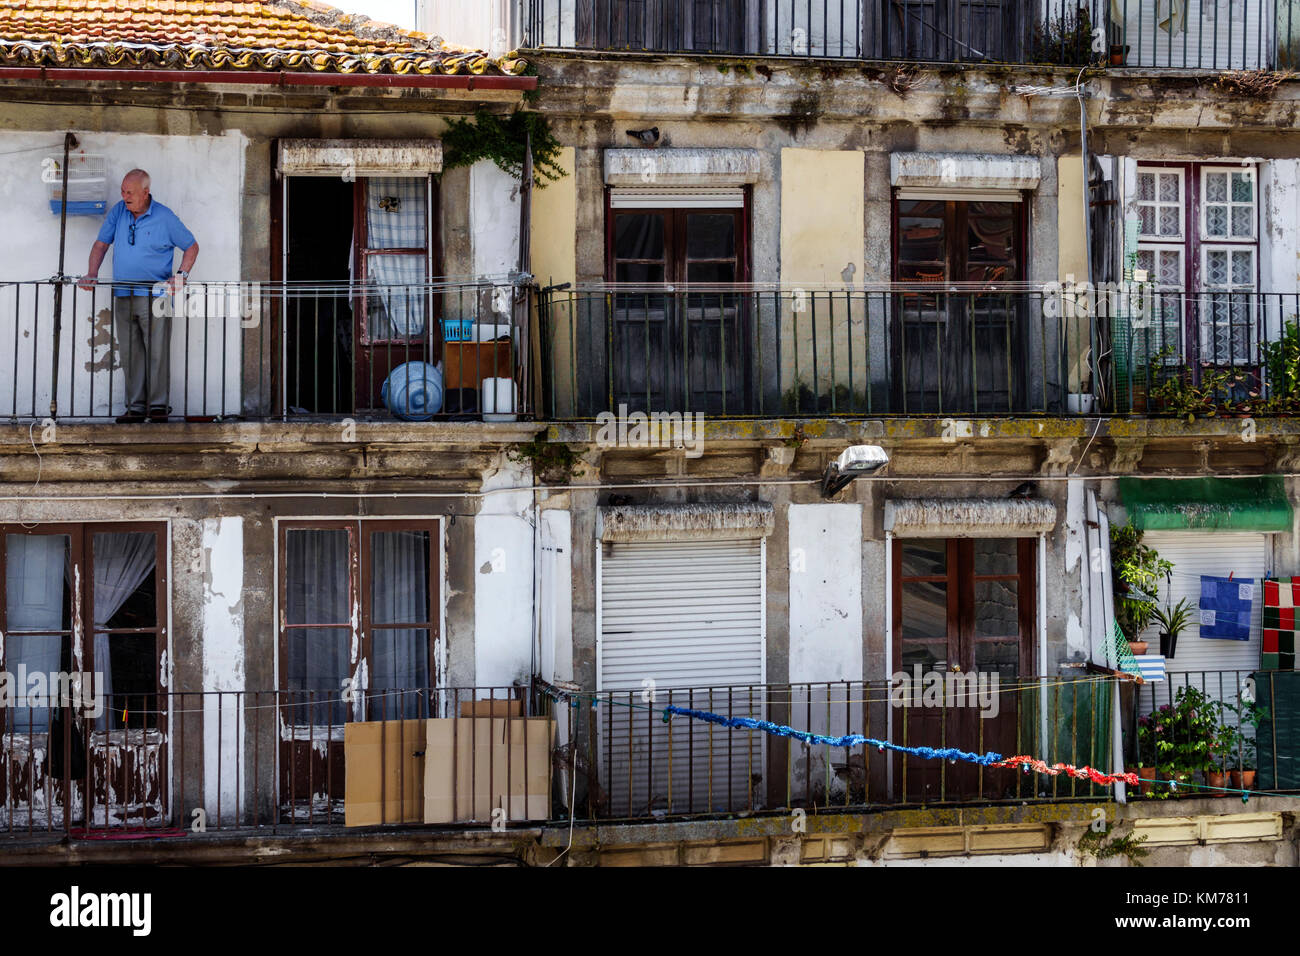 Porto Portugal historic center Ribeira neighborhood residential apartment building flats balcony man senior dilapidated - Stock Image